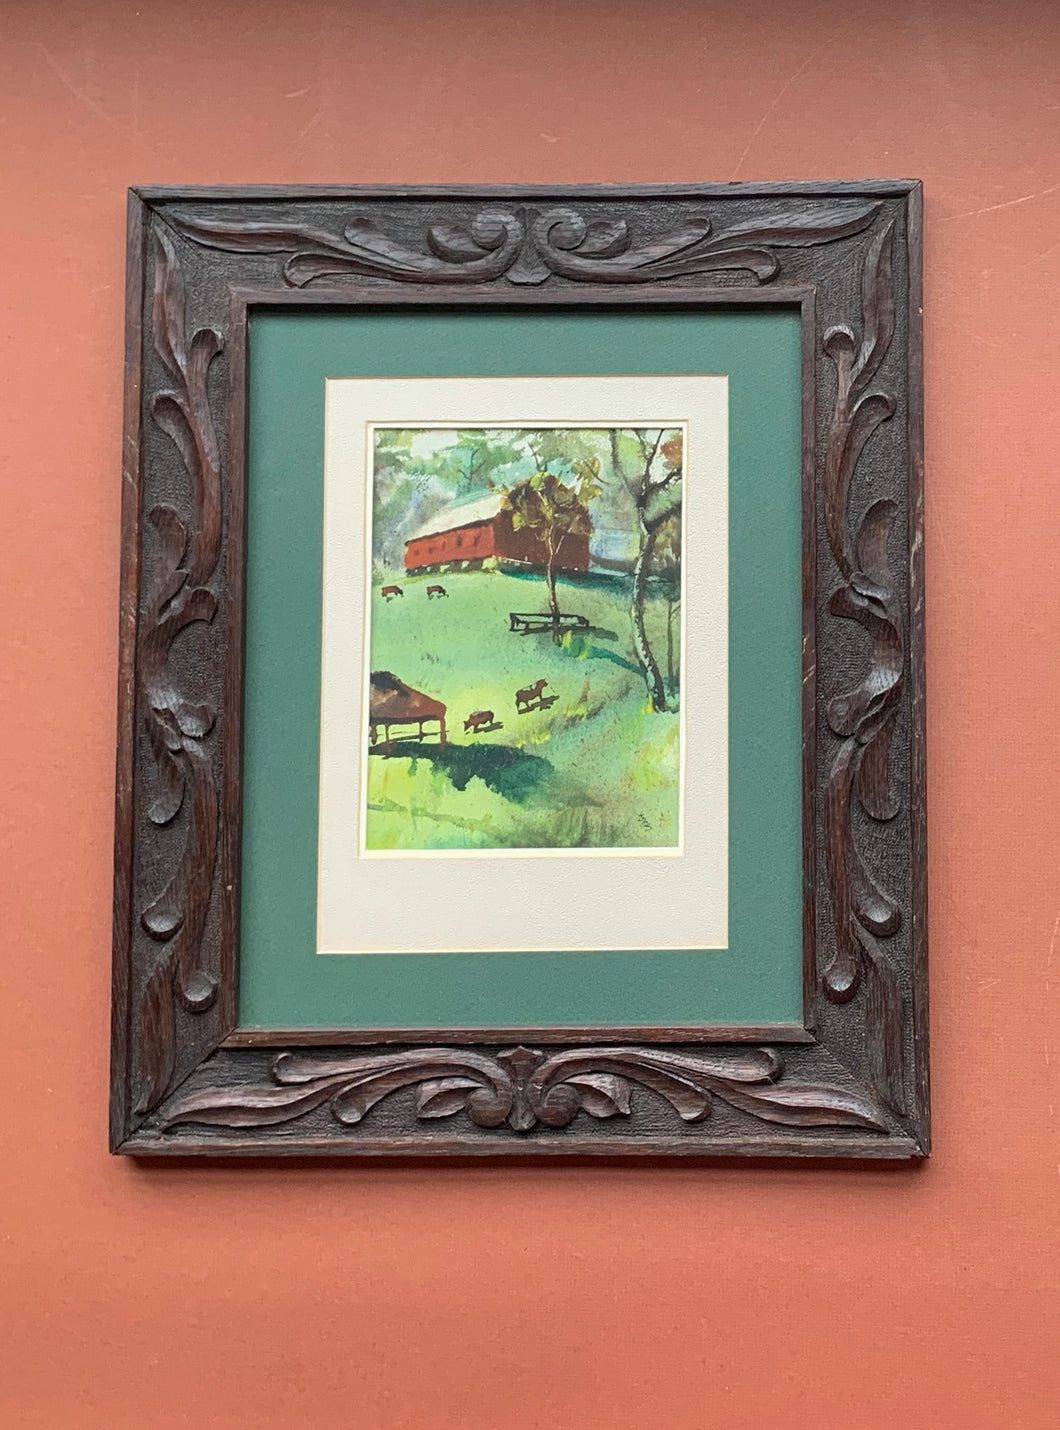 Framed Watercolor of Barn and Cows